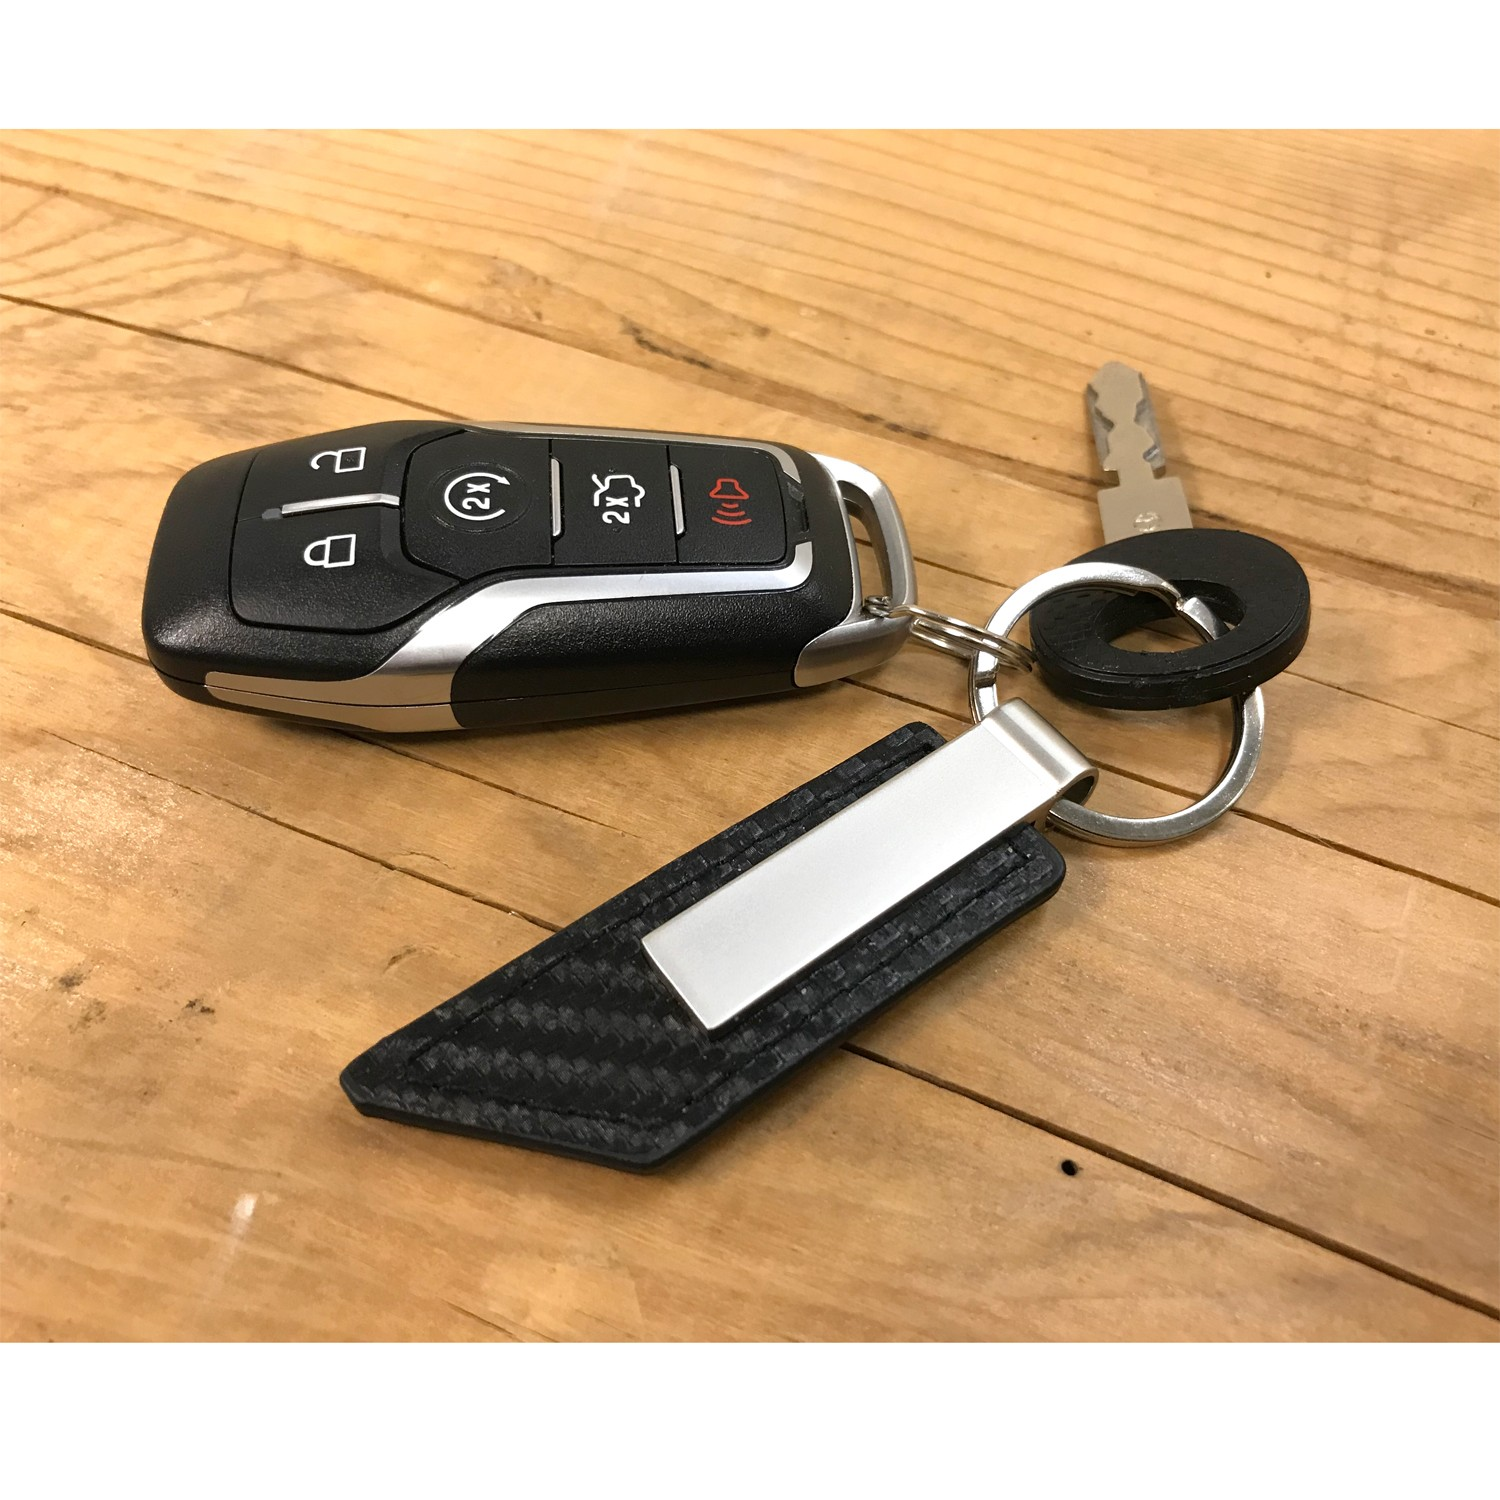 Expedition Ford Carbon Fiber Texture Black Leather Strap Key Chain iPick Image